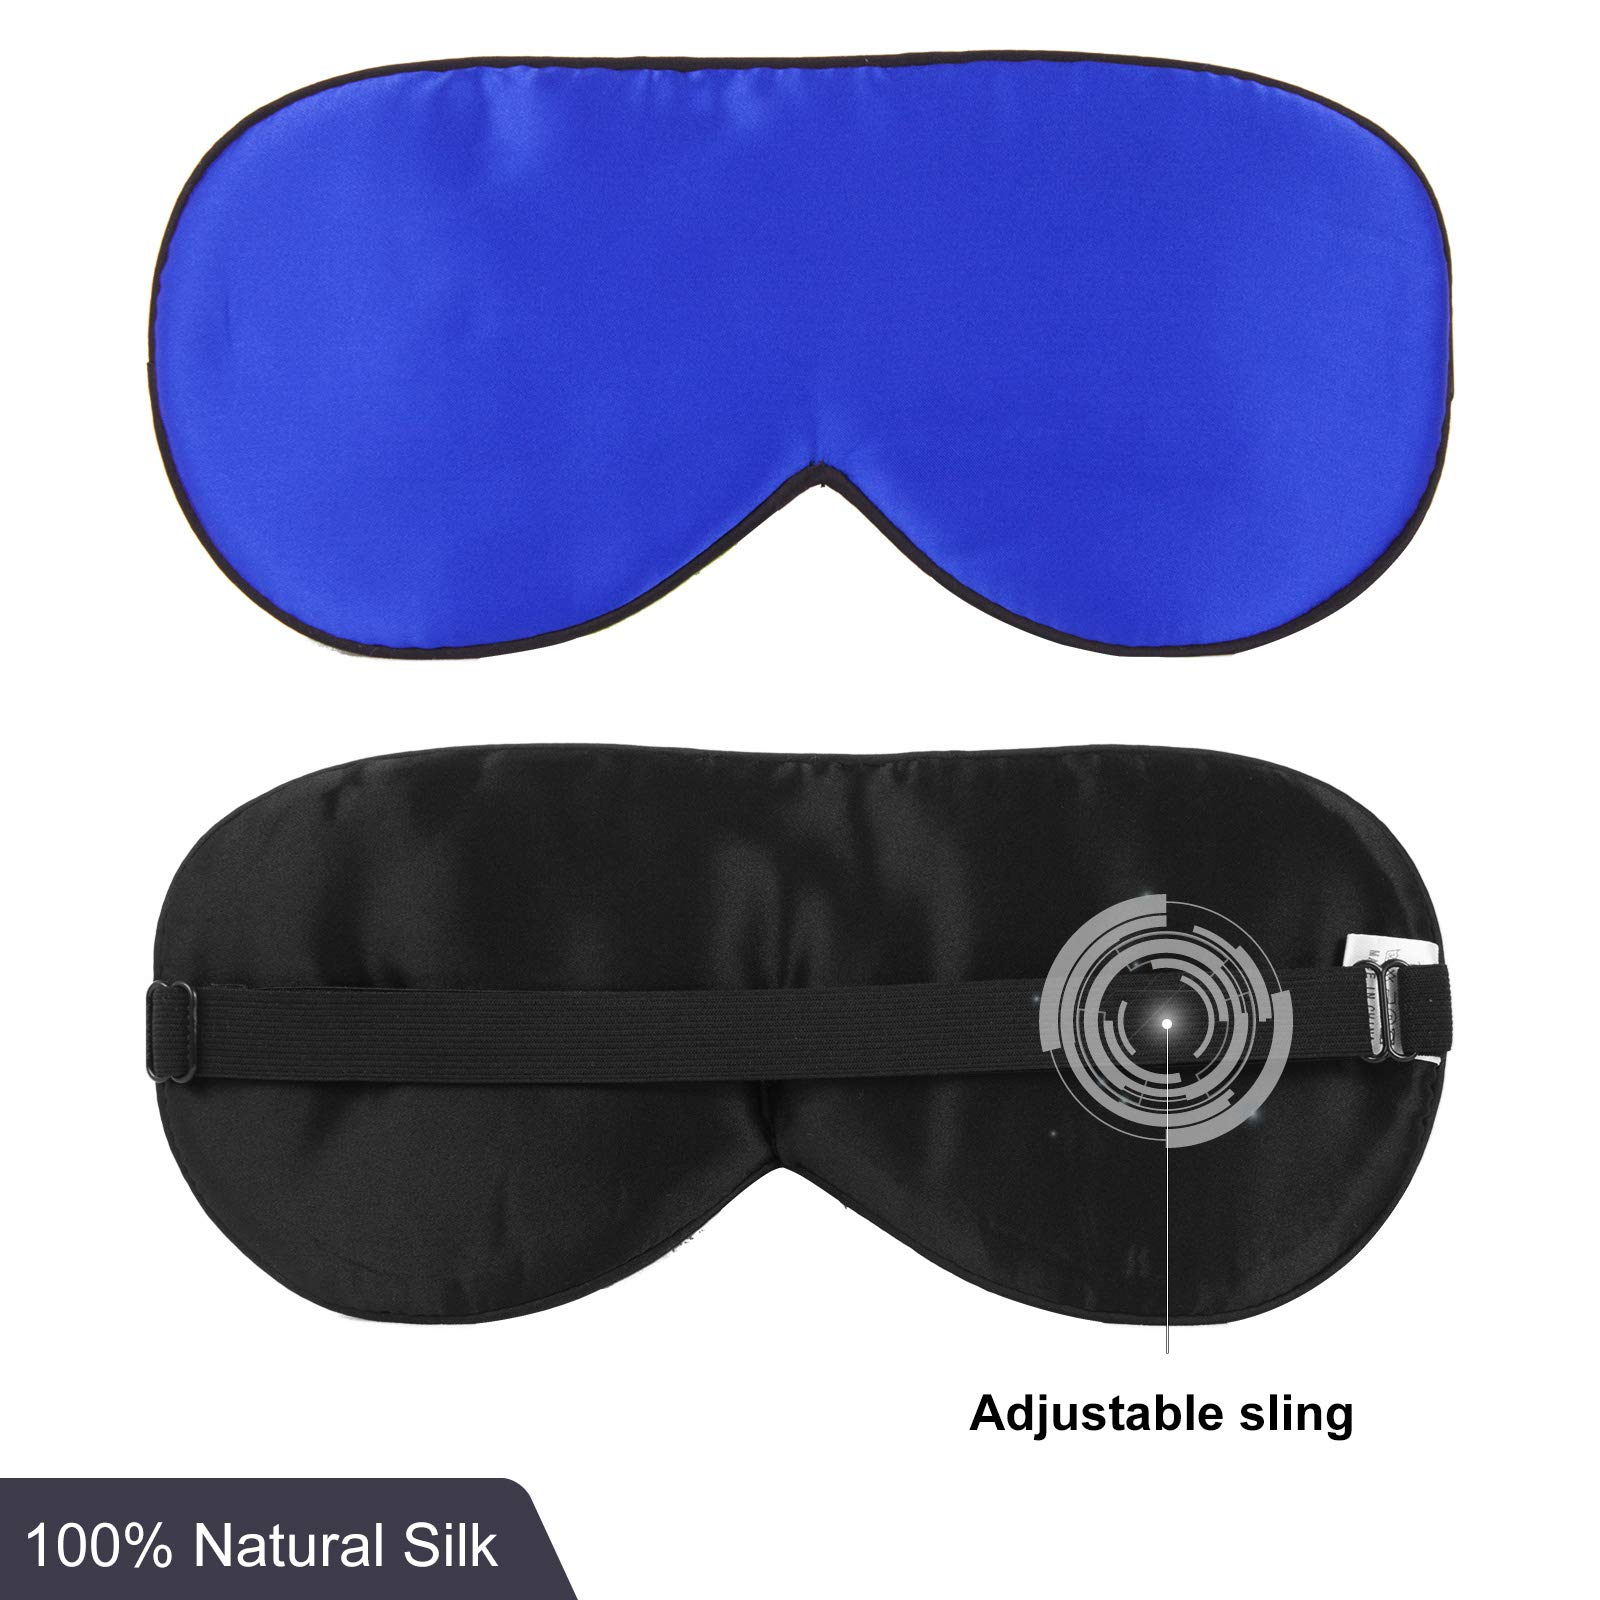 Silk Sleep Mask Adjustable Strap Comfortable Night Sleeping Reversible Lightweight and Super Soft Eye Mask Night Blindfold Eyeshade for Men Women Kids for Travel Airplane Shift Work Naps, Blue